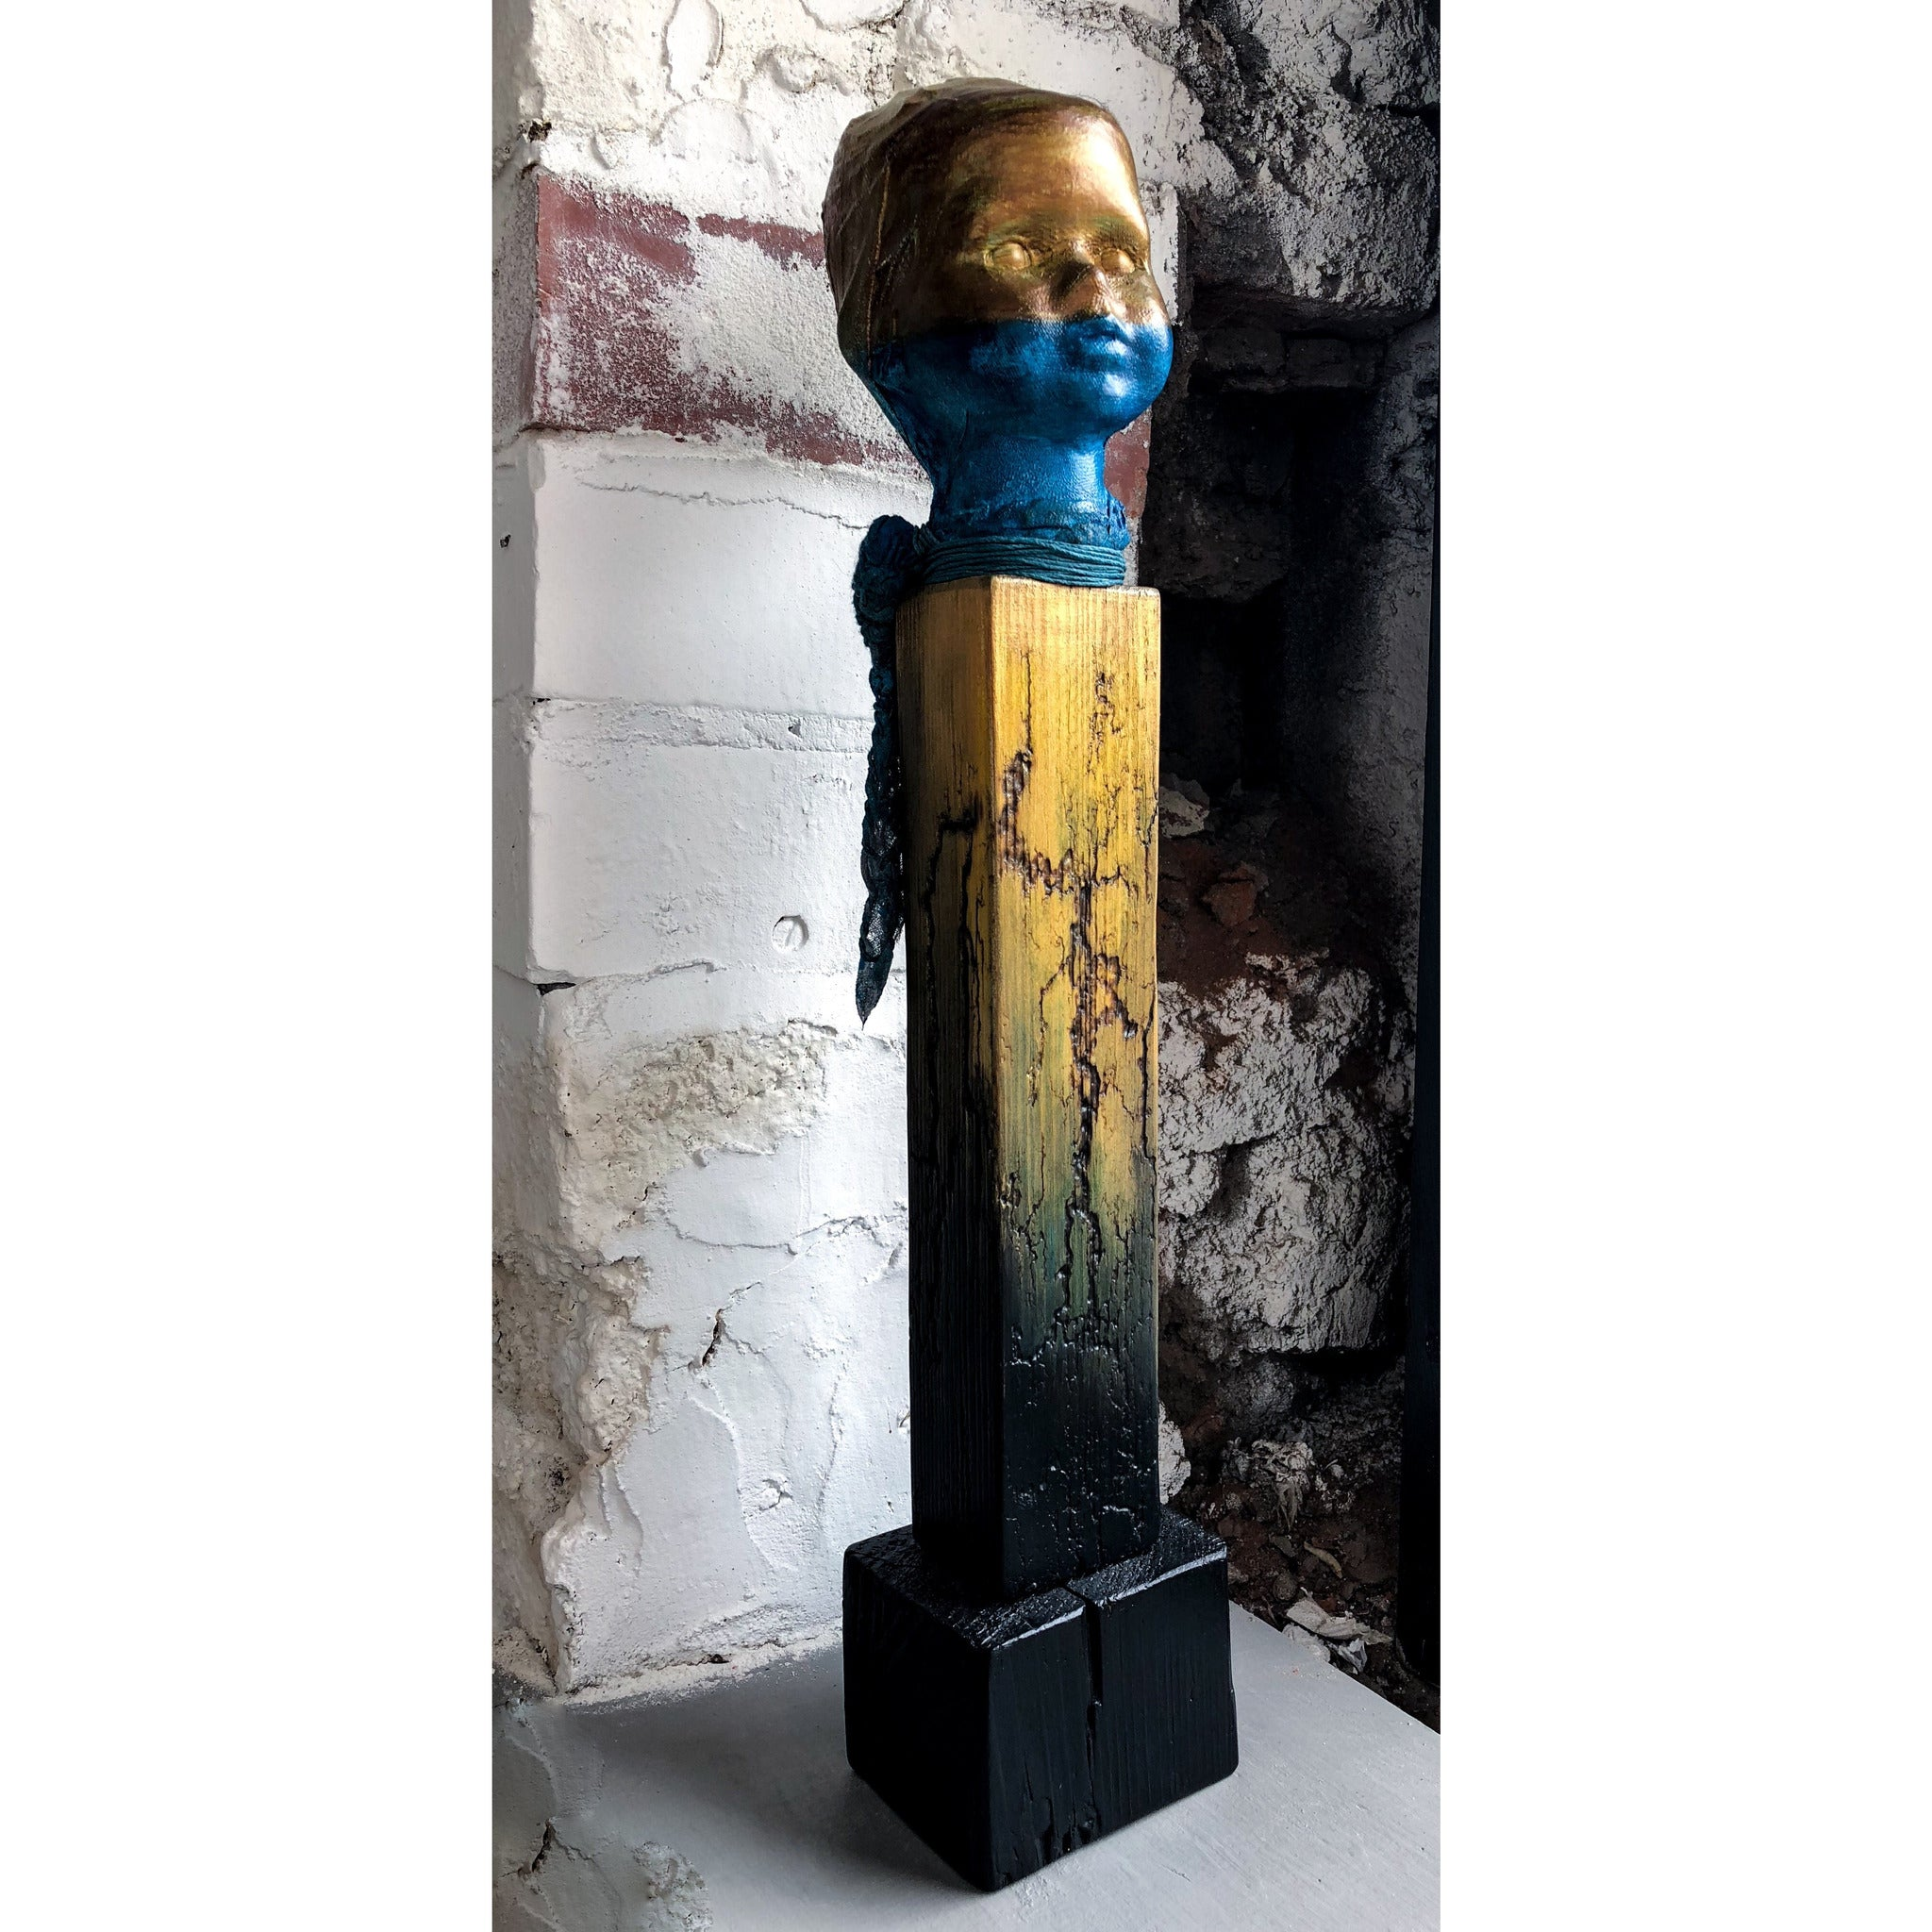 Lost Angel - Gold and Blue by Sonia Dalga - Egoiste Gallery - Art Gallery in Manchester City Centre